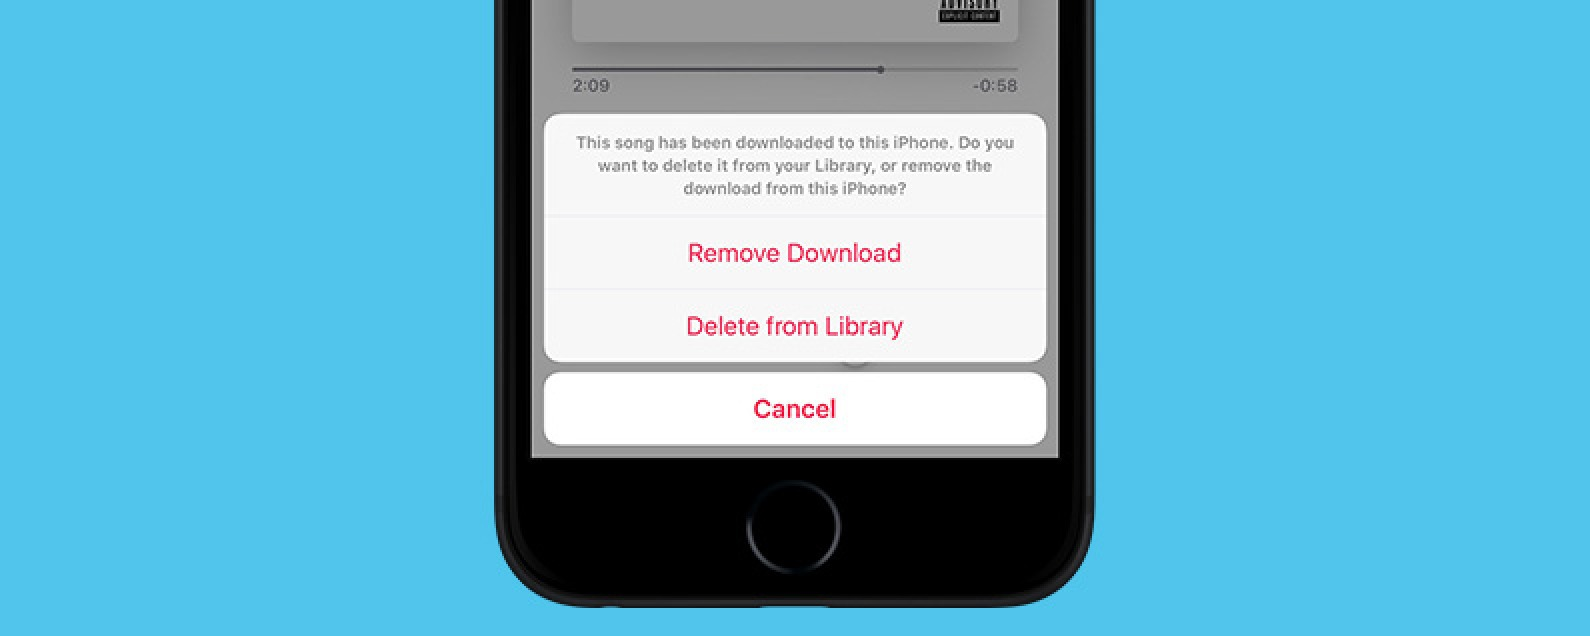 How to Delete a Song from Your Apple Music Library on iPhone